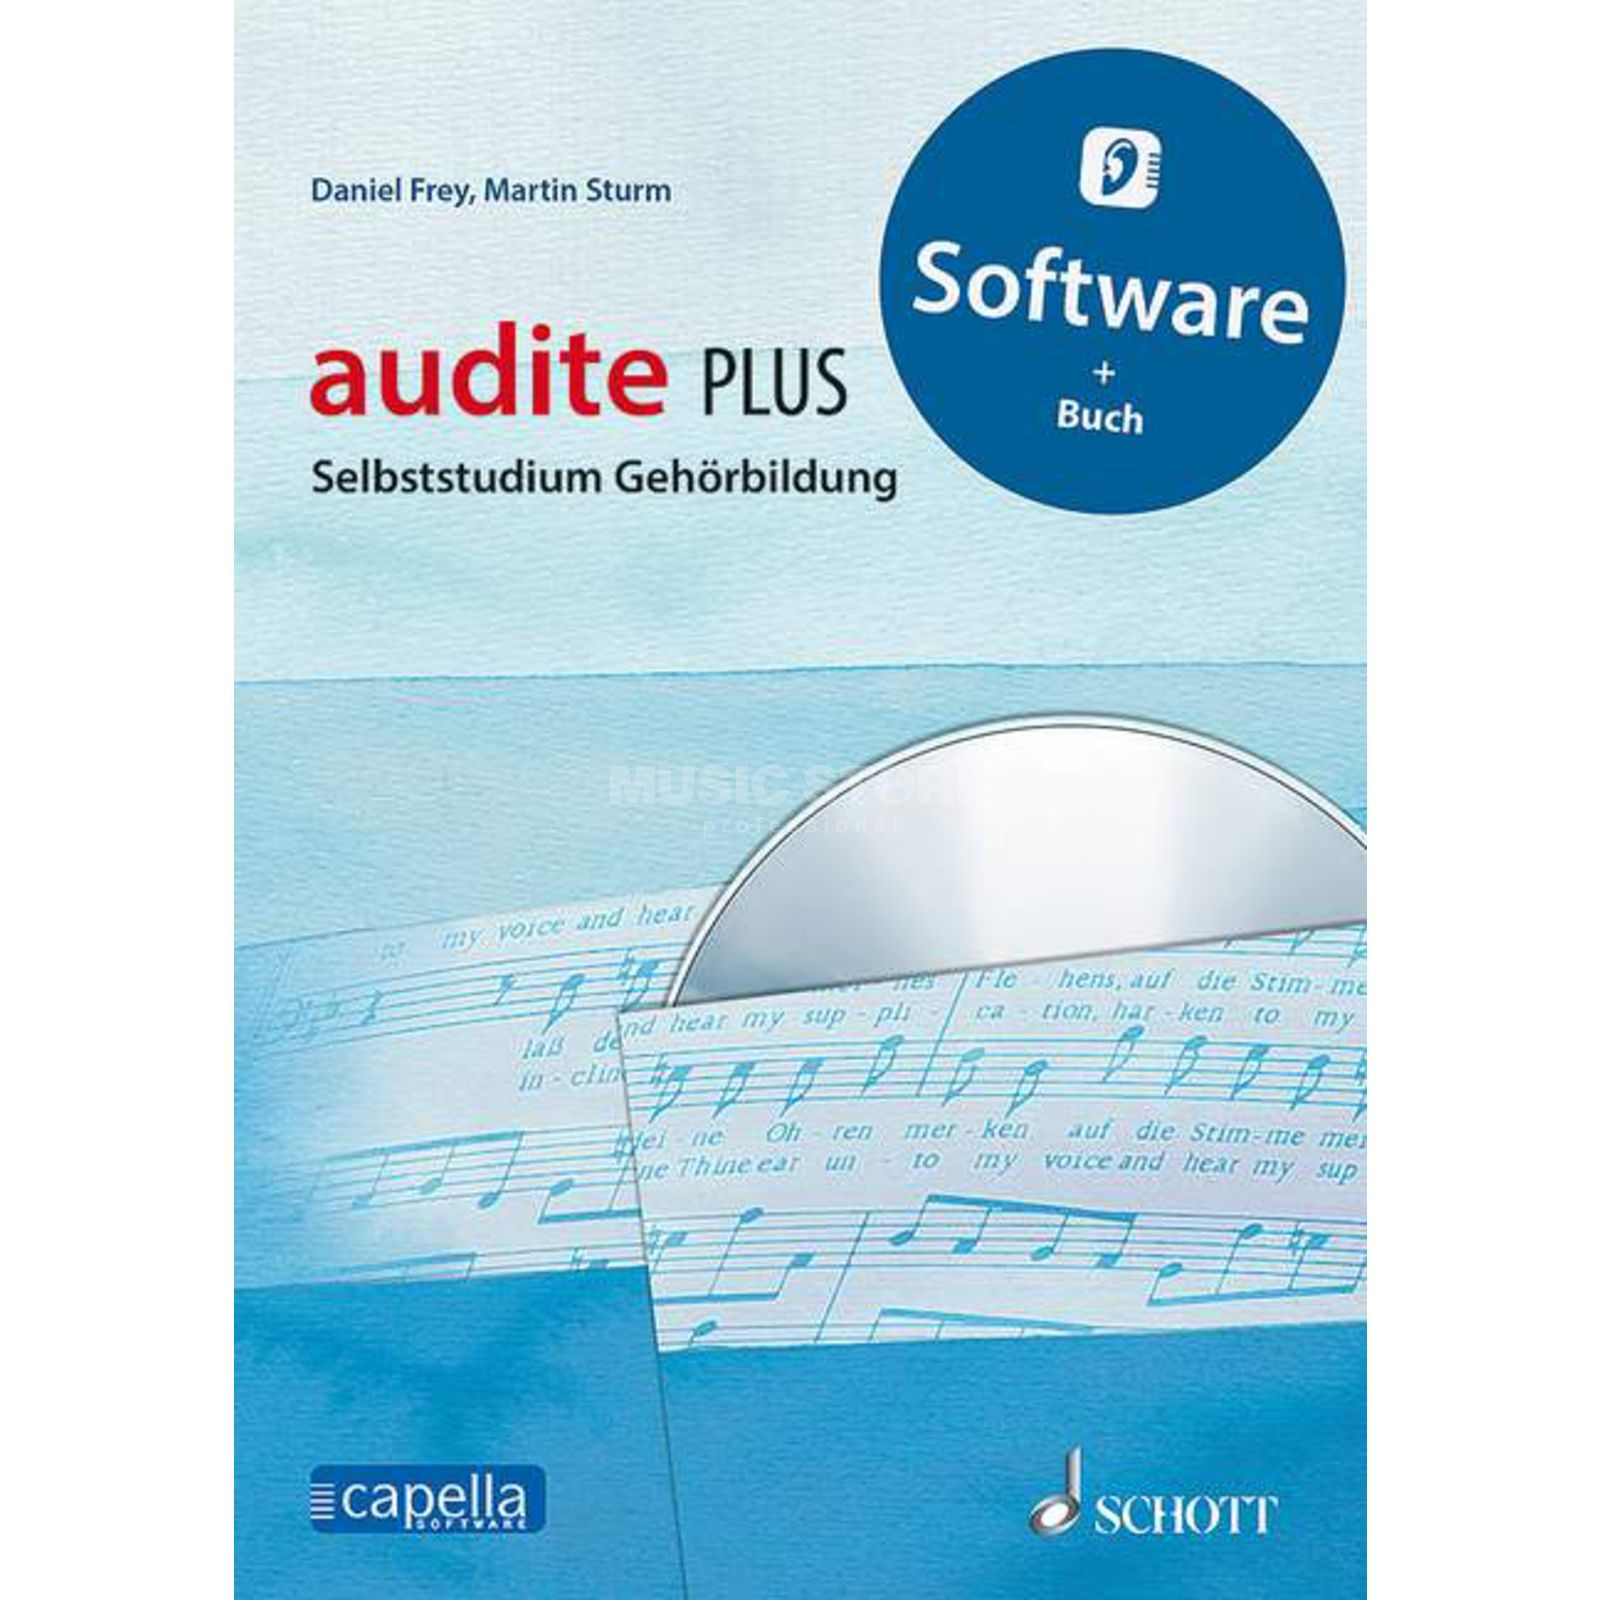 Schott-Verlag audite PLUS Product Image